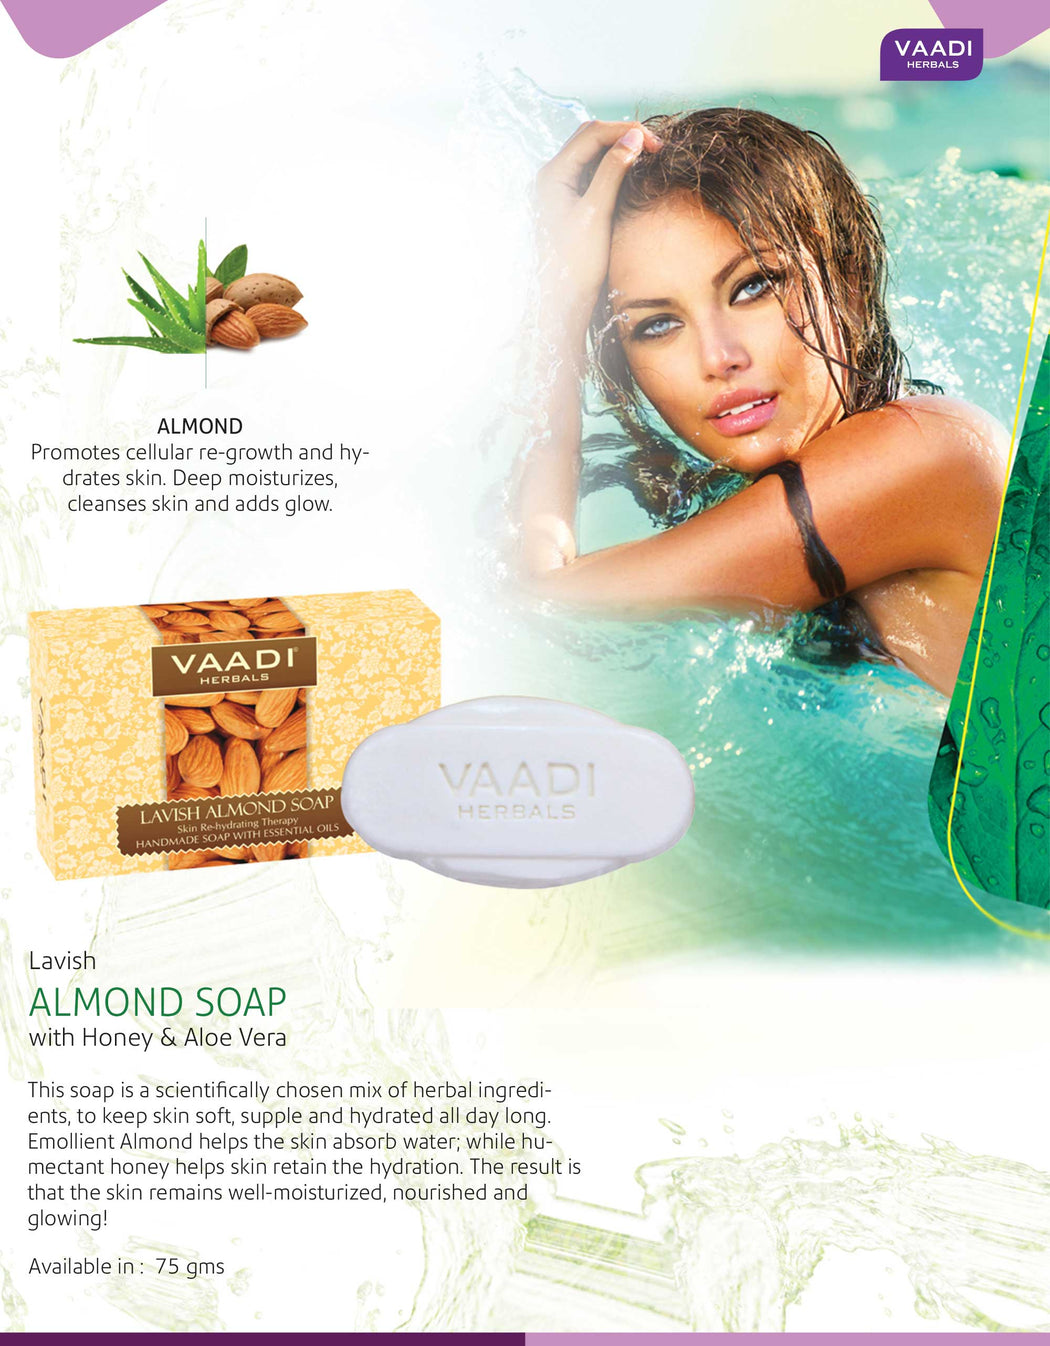 Rehydrating Organic Lavish Almond Soap with Honey & Aloe Vera - Improves Complexion - Keeps Skin Nourished (12 x 75 gms/2.7 oz)